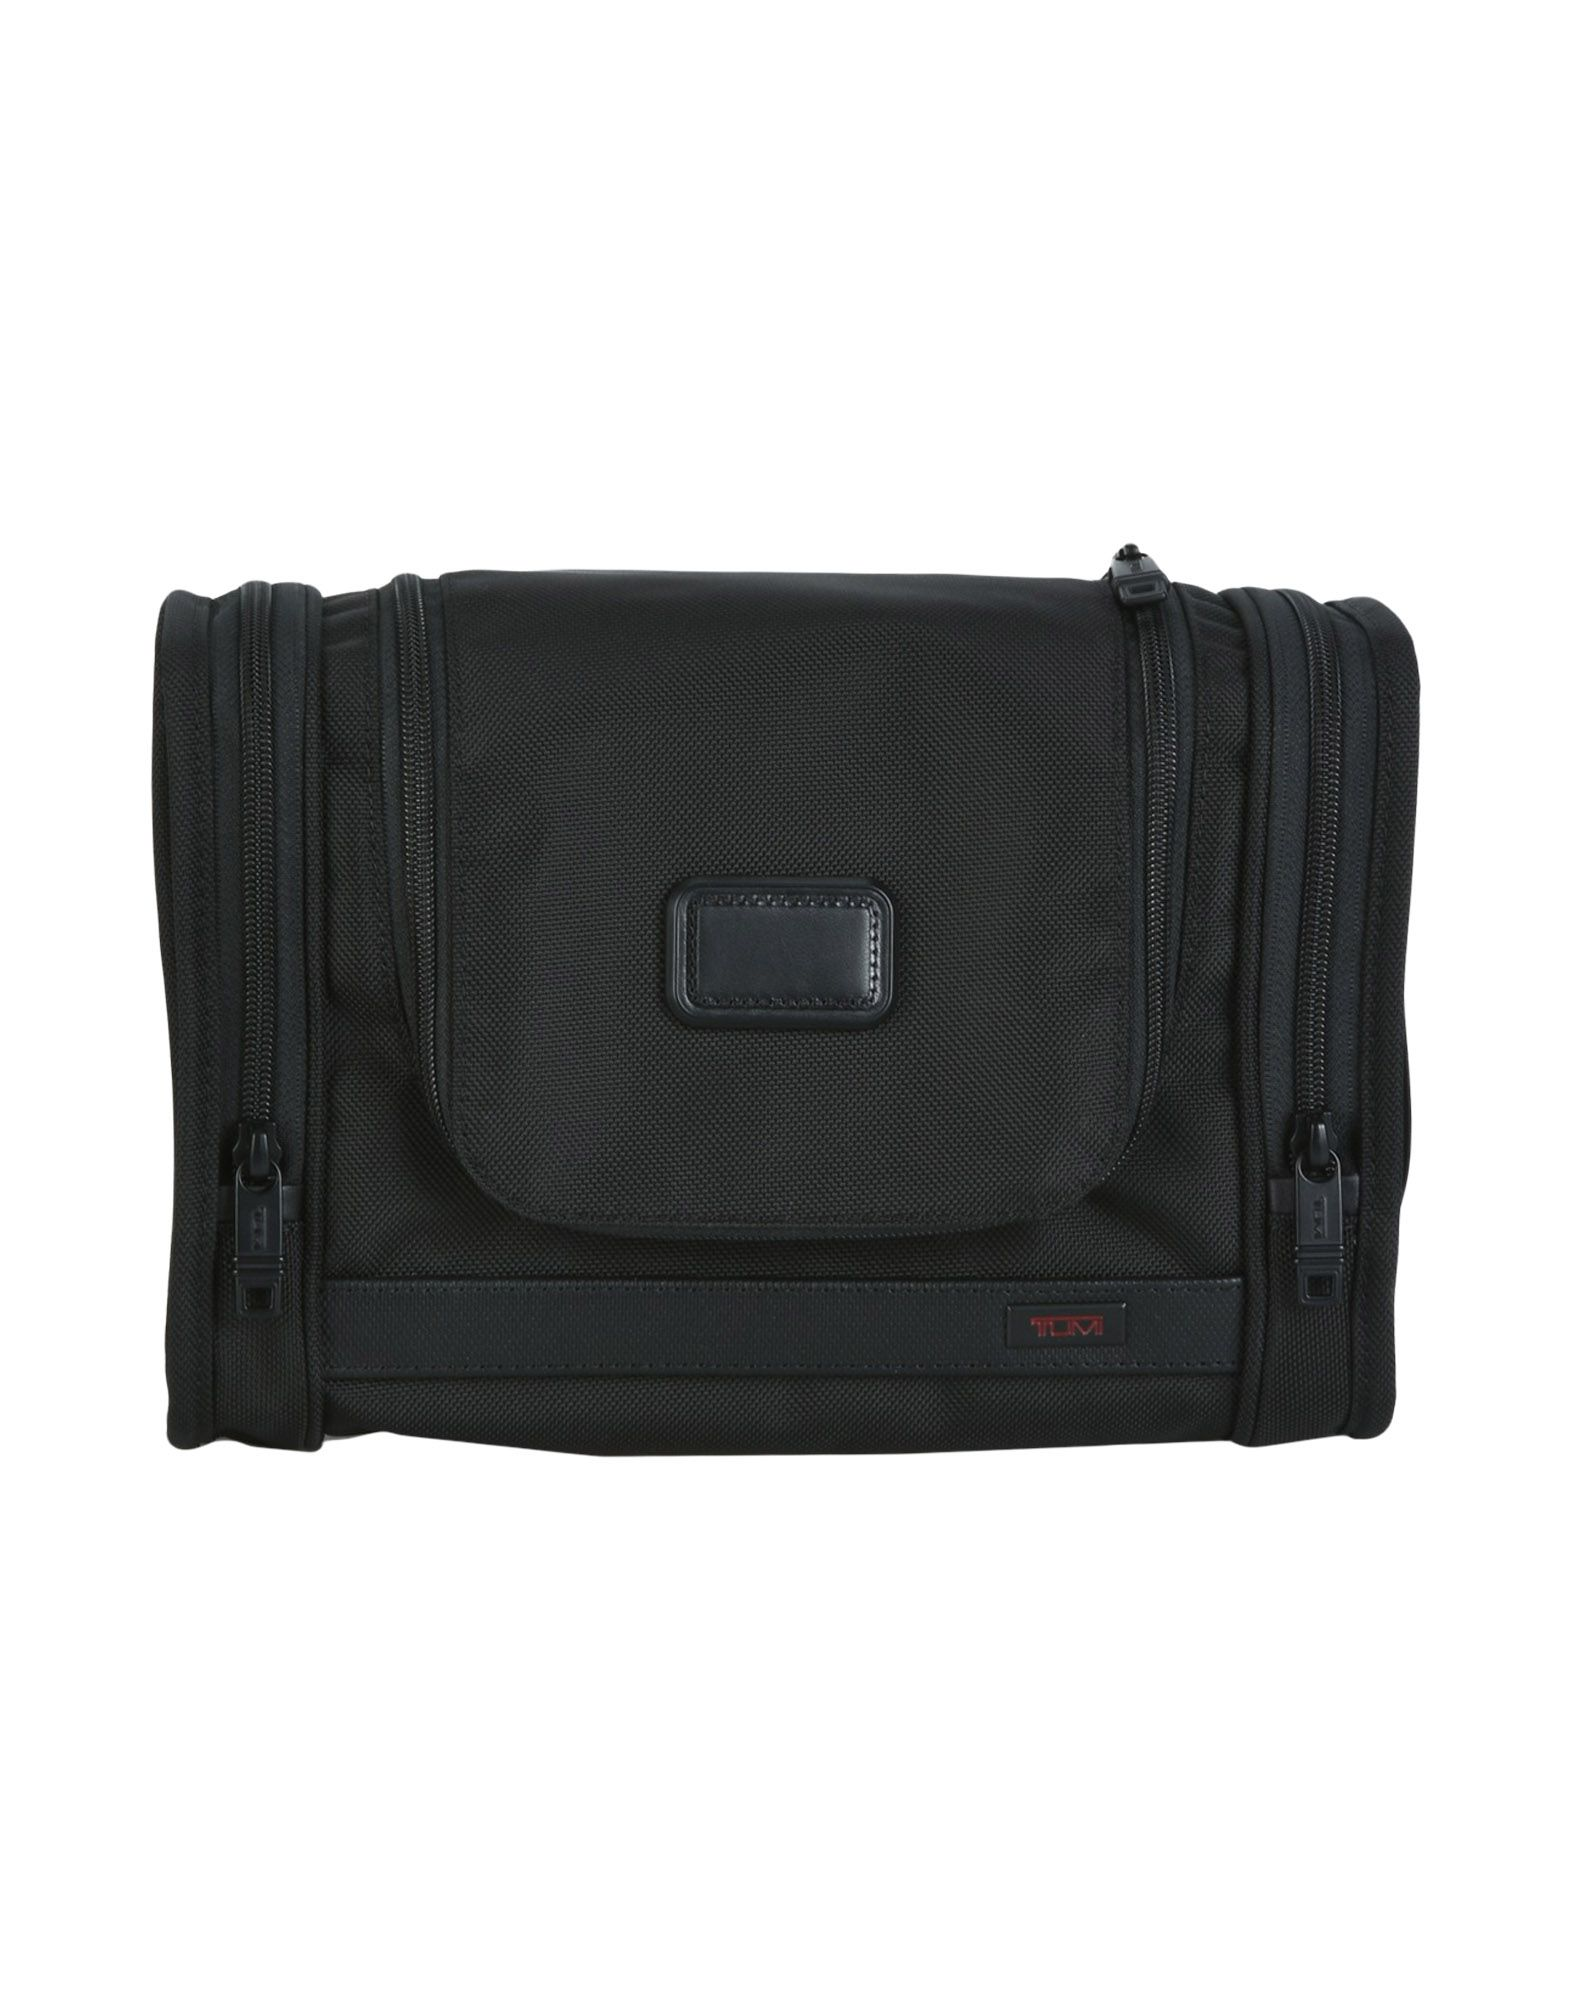 TUMI Beauty case